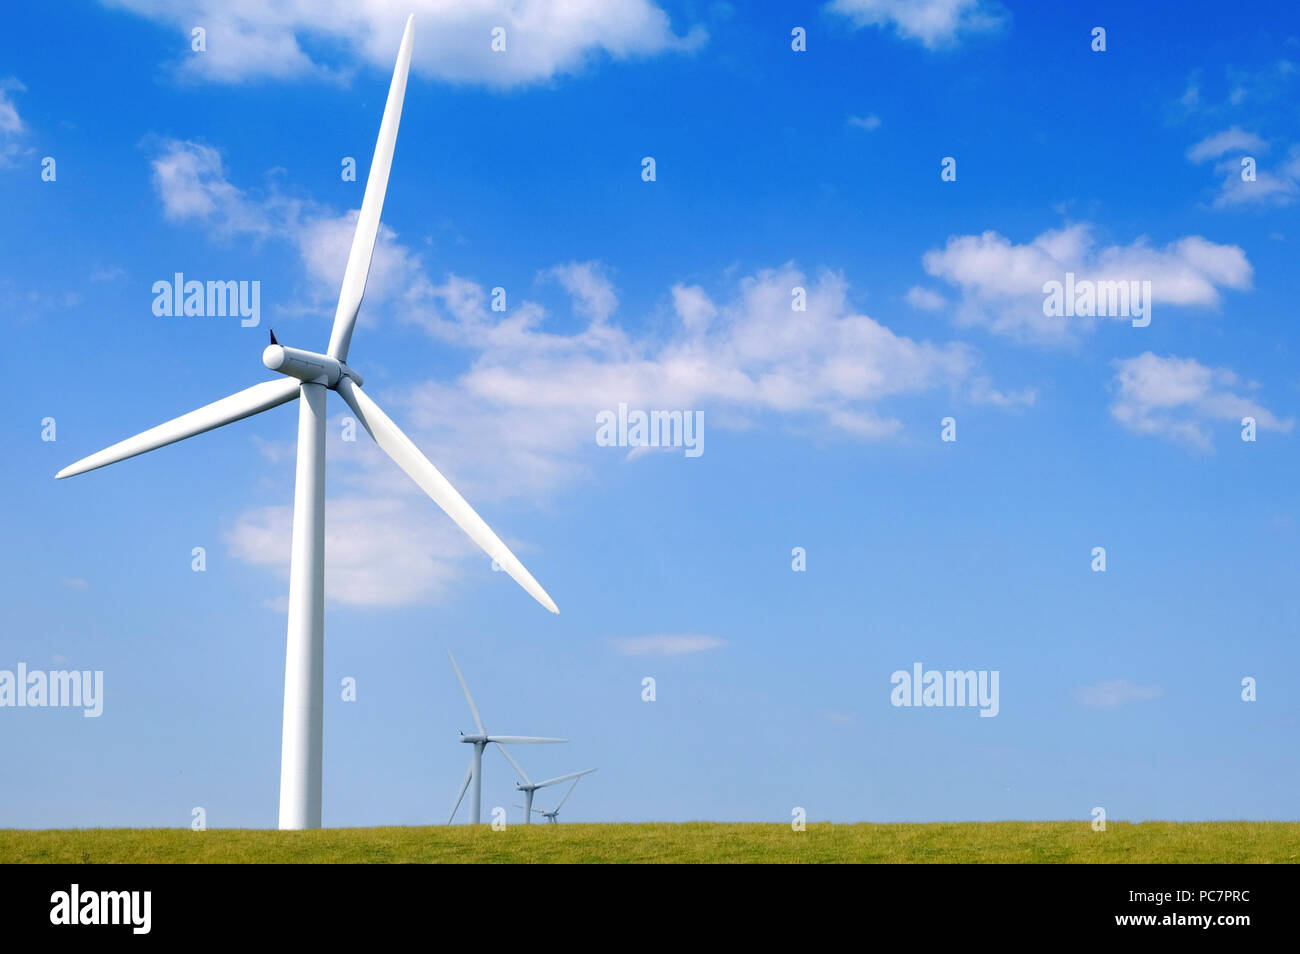 Wind turbines against a blue sky in North Wales - Stock Image